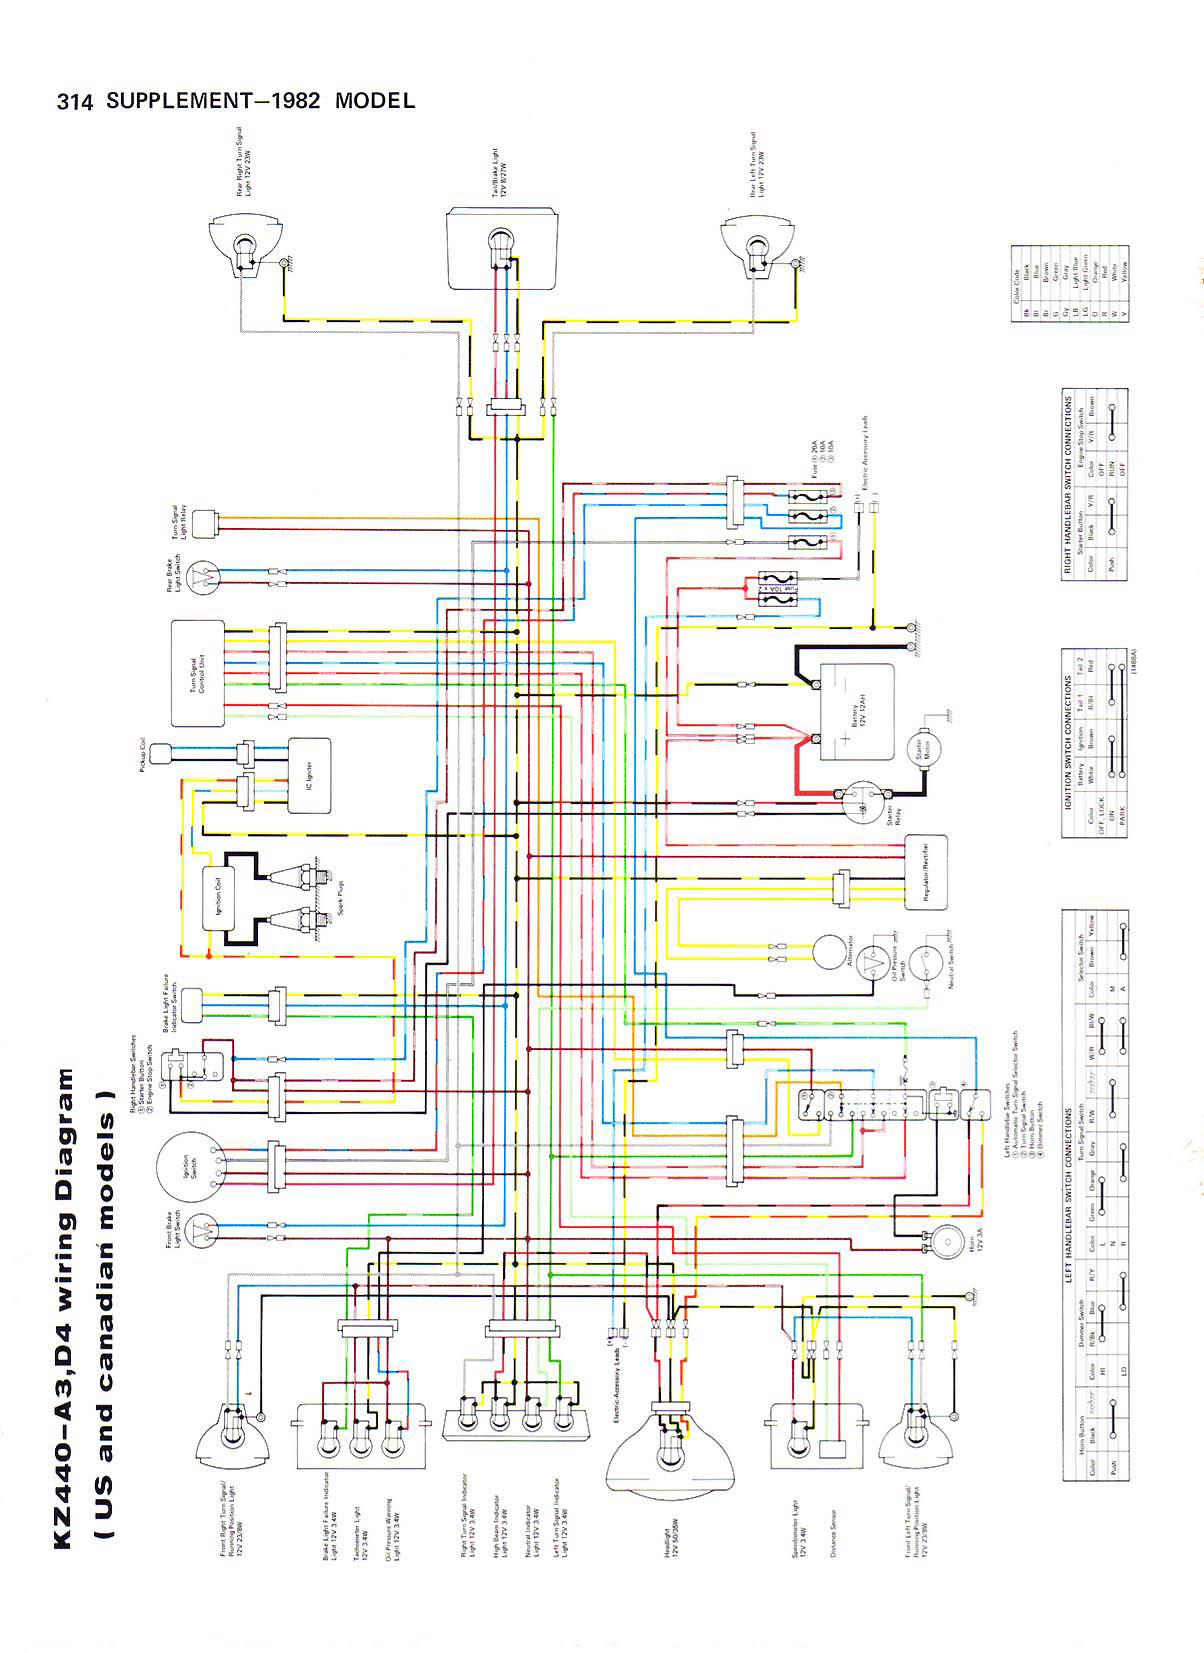 Wiring diagram zx7r troubleshooting free download wiring diagram free download wiring diagram kawasaki kz440 wiring diagram wiring diagram of wiring diagram zx7r troubleshooting asfbconference2016 Choice Image